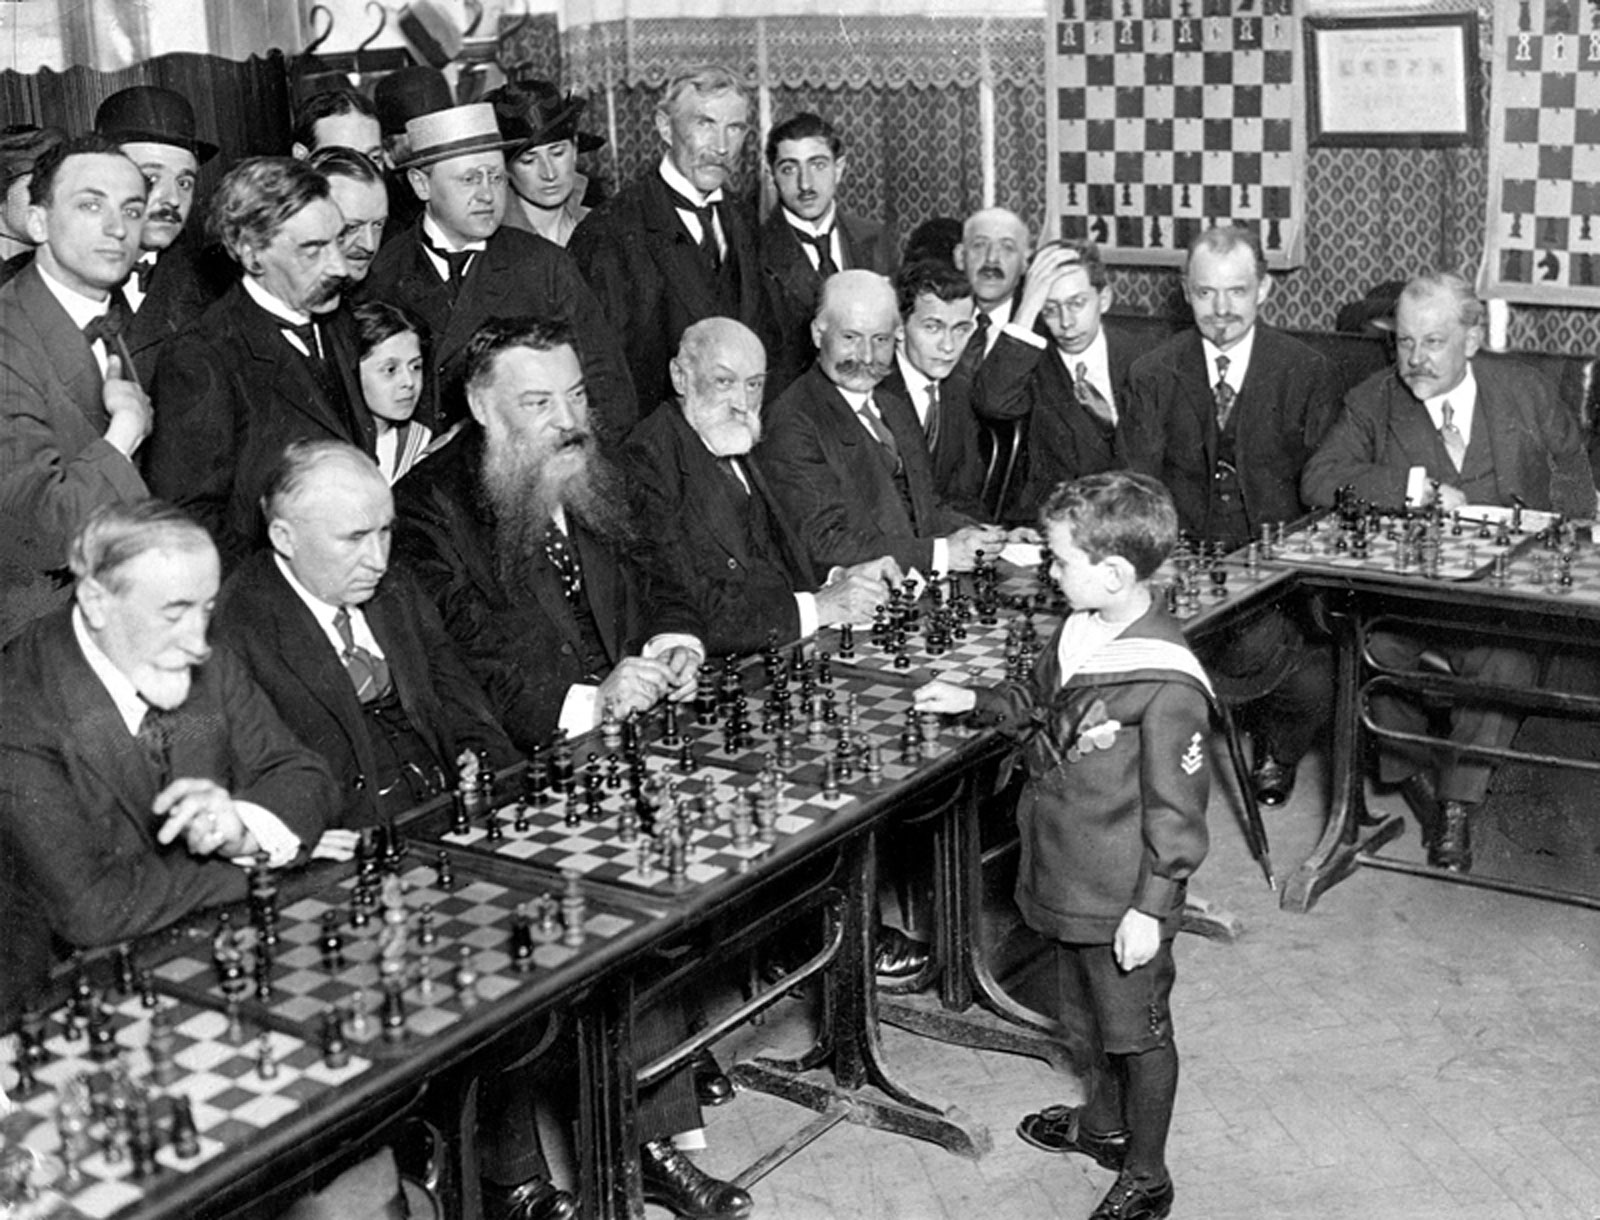 Samuel Reshevsky, age 8, defeating several chess masters at once in France, 1920 - Imgur